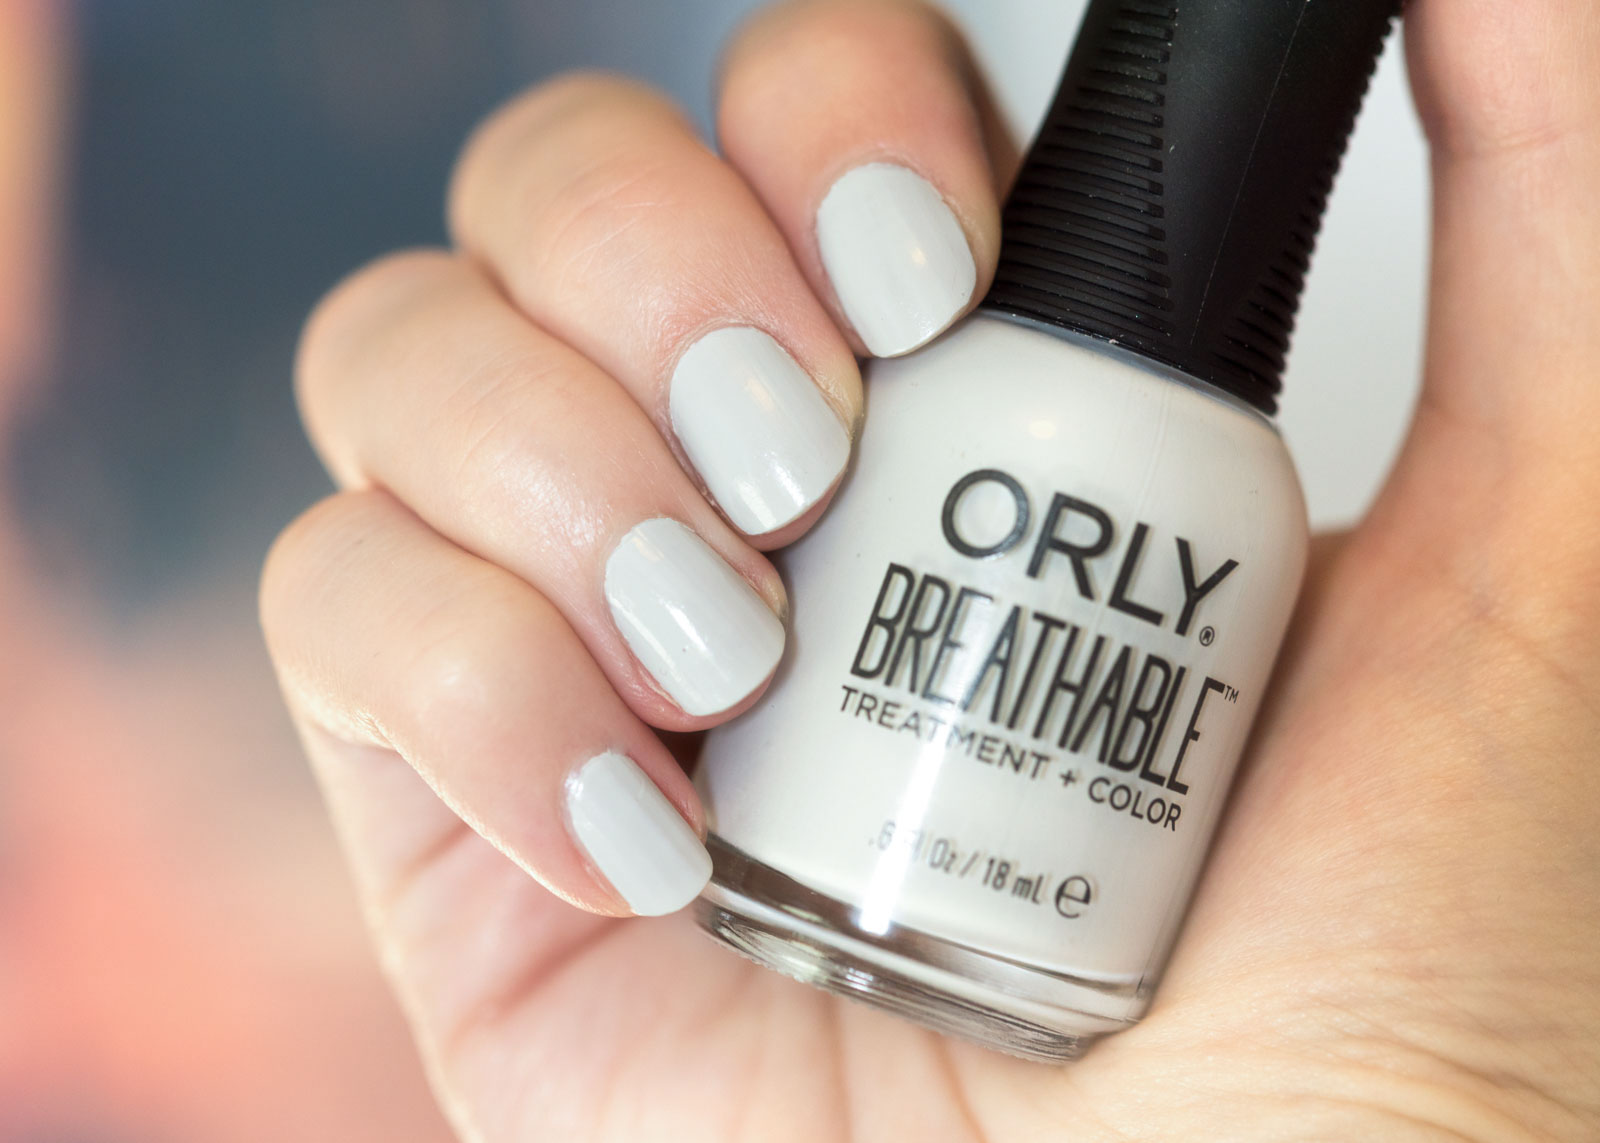 Orly Breathable Treatment + Color Review Power Packed swatch